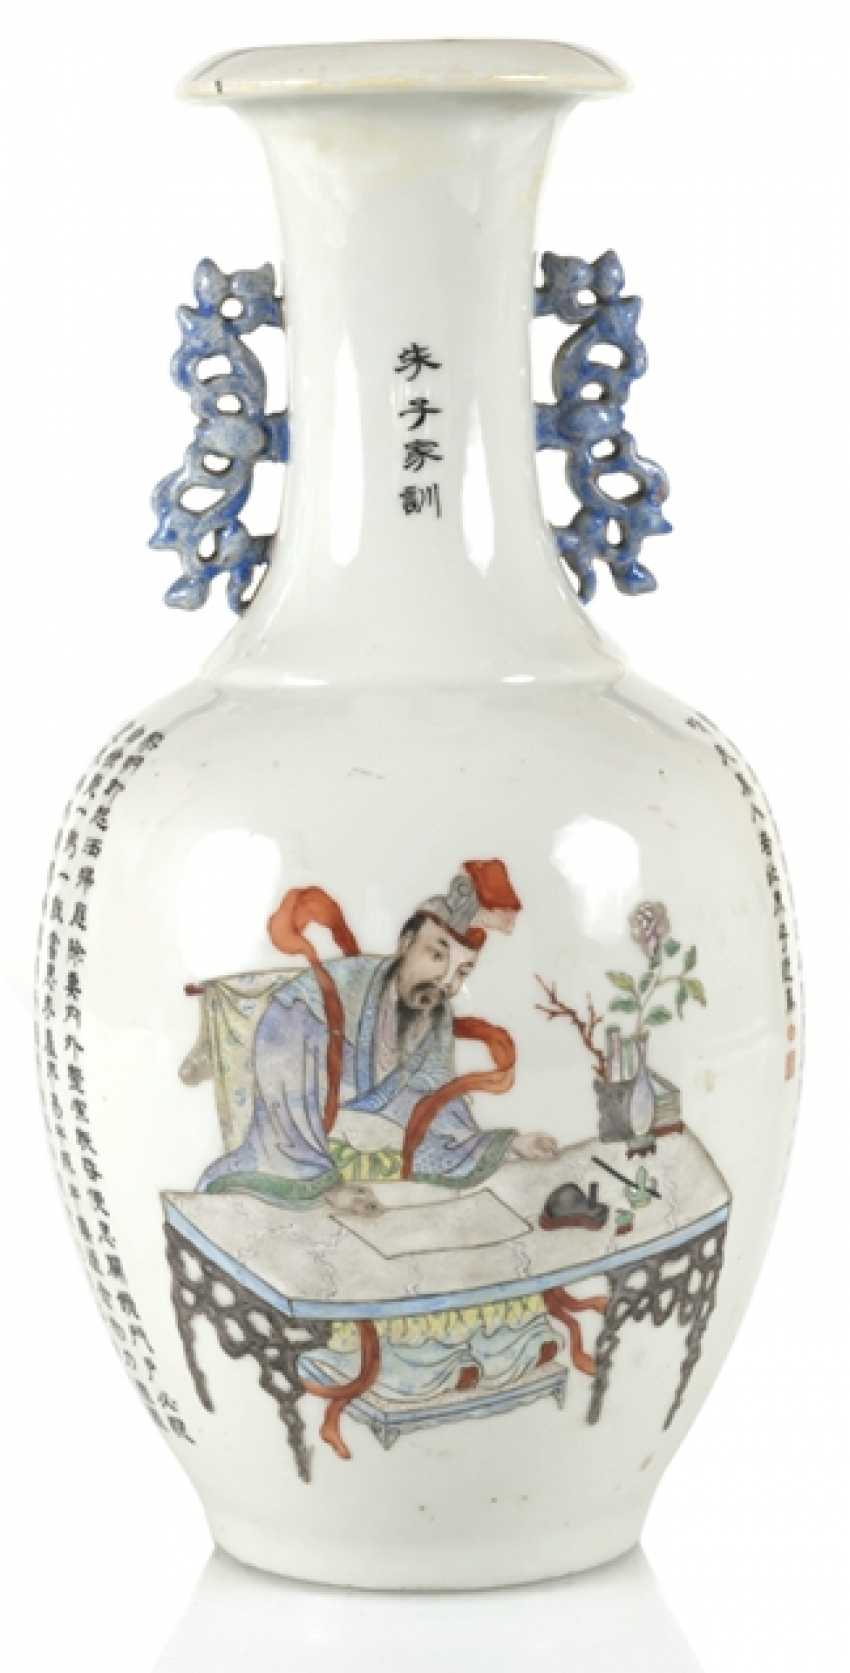 Vase made of porcelain m. taught scene, & the poem inscription in the colours of the 'Famille-rose' - photo 1